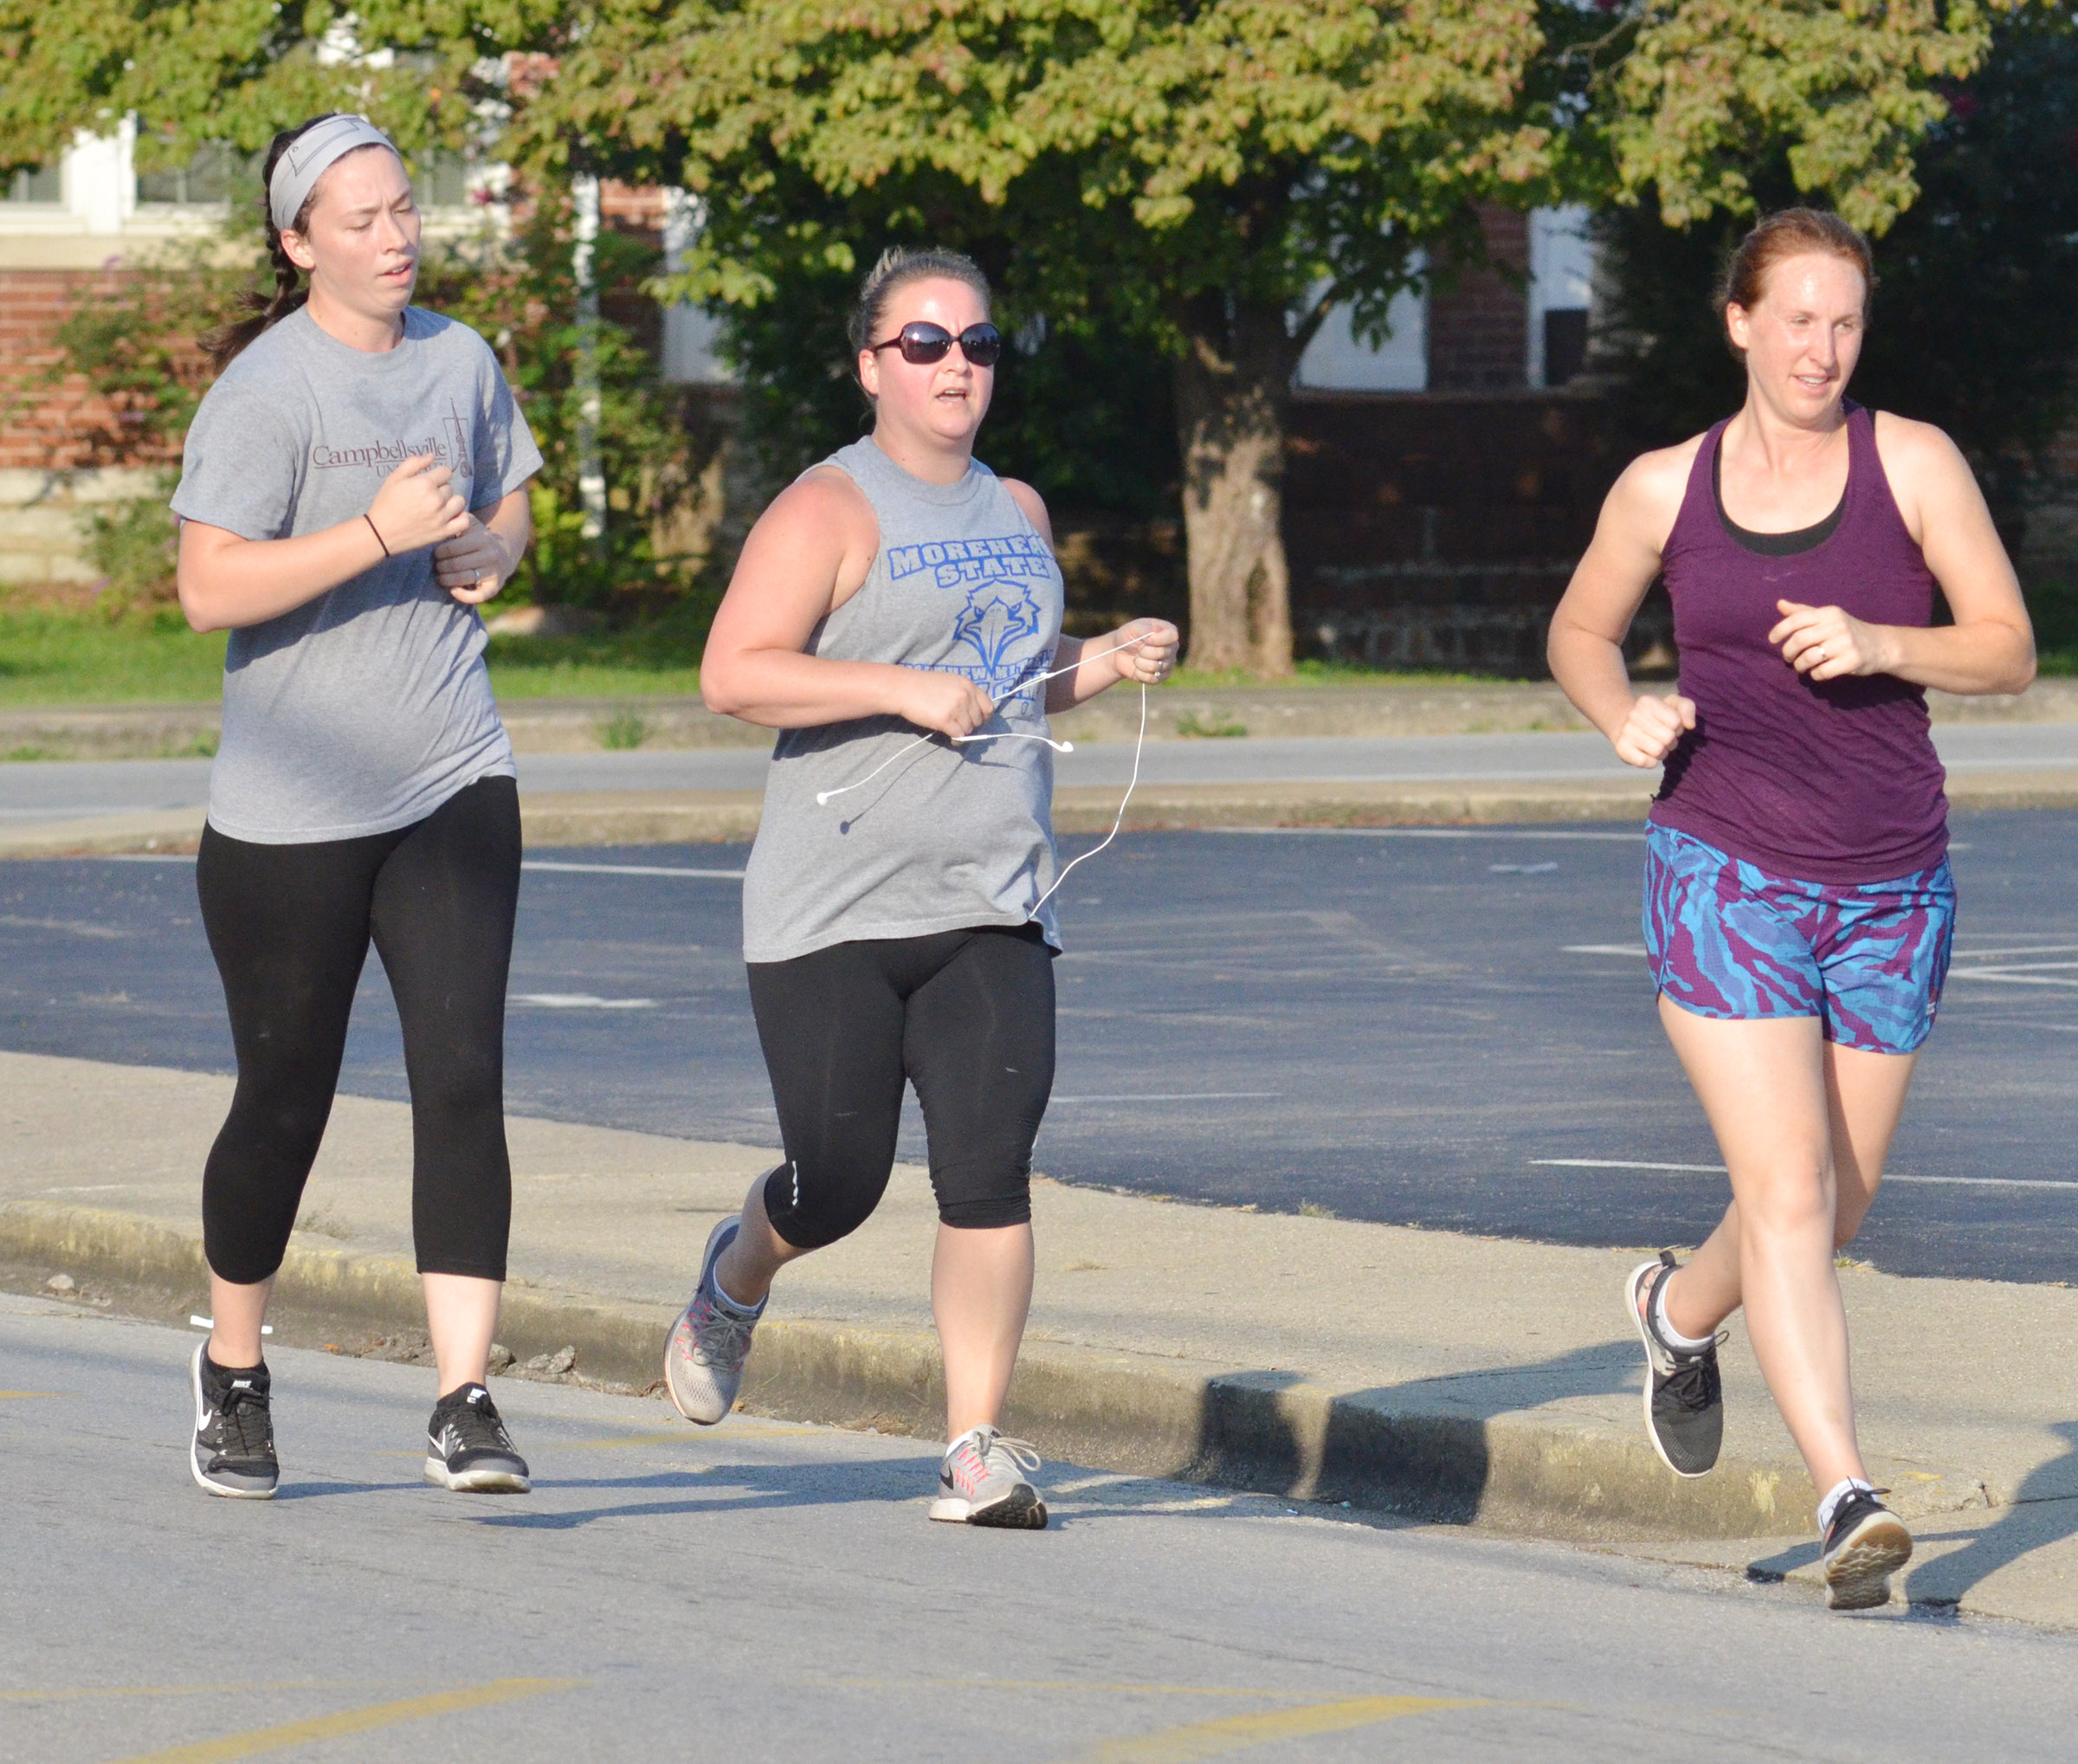 Campbellsville Middle School teacher Katie Campbell, center, finishes the 5K race.